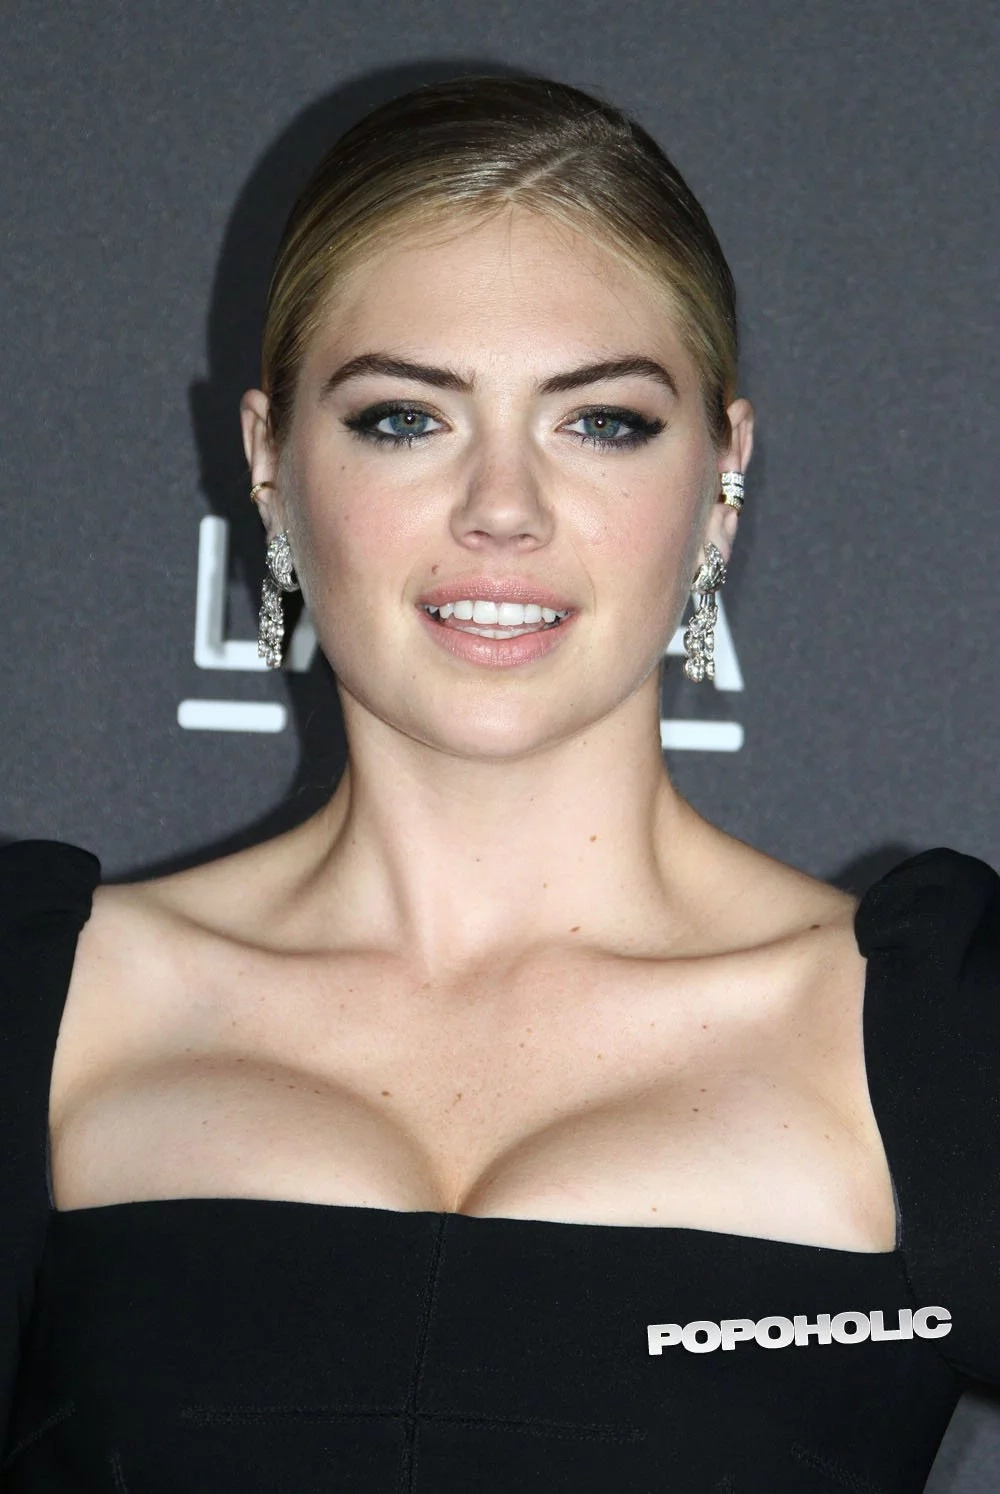 Kate Upton's Massive Cleavage Show Will Melt Your Freaking Eyeballs!